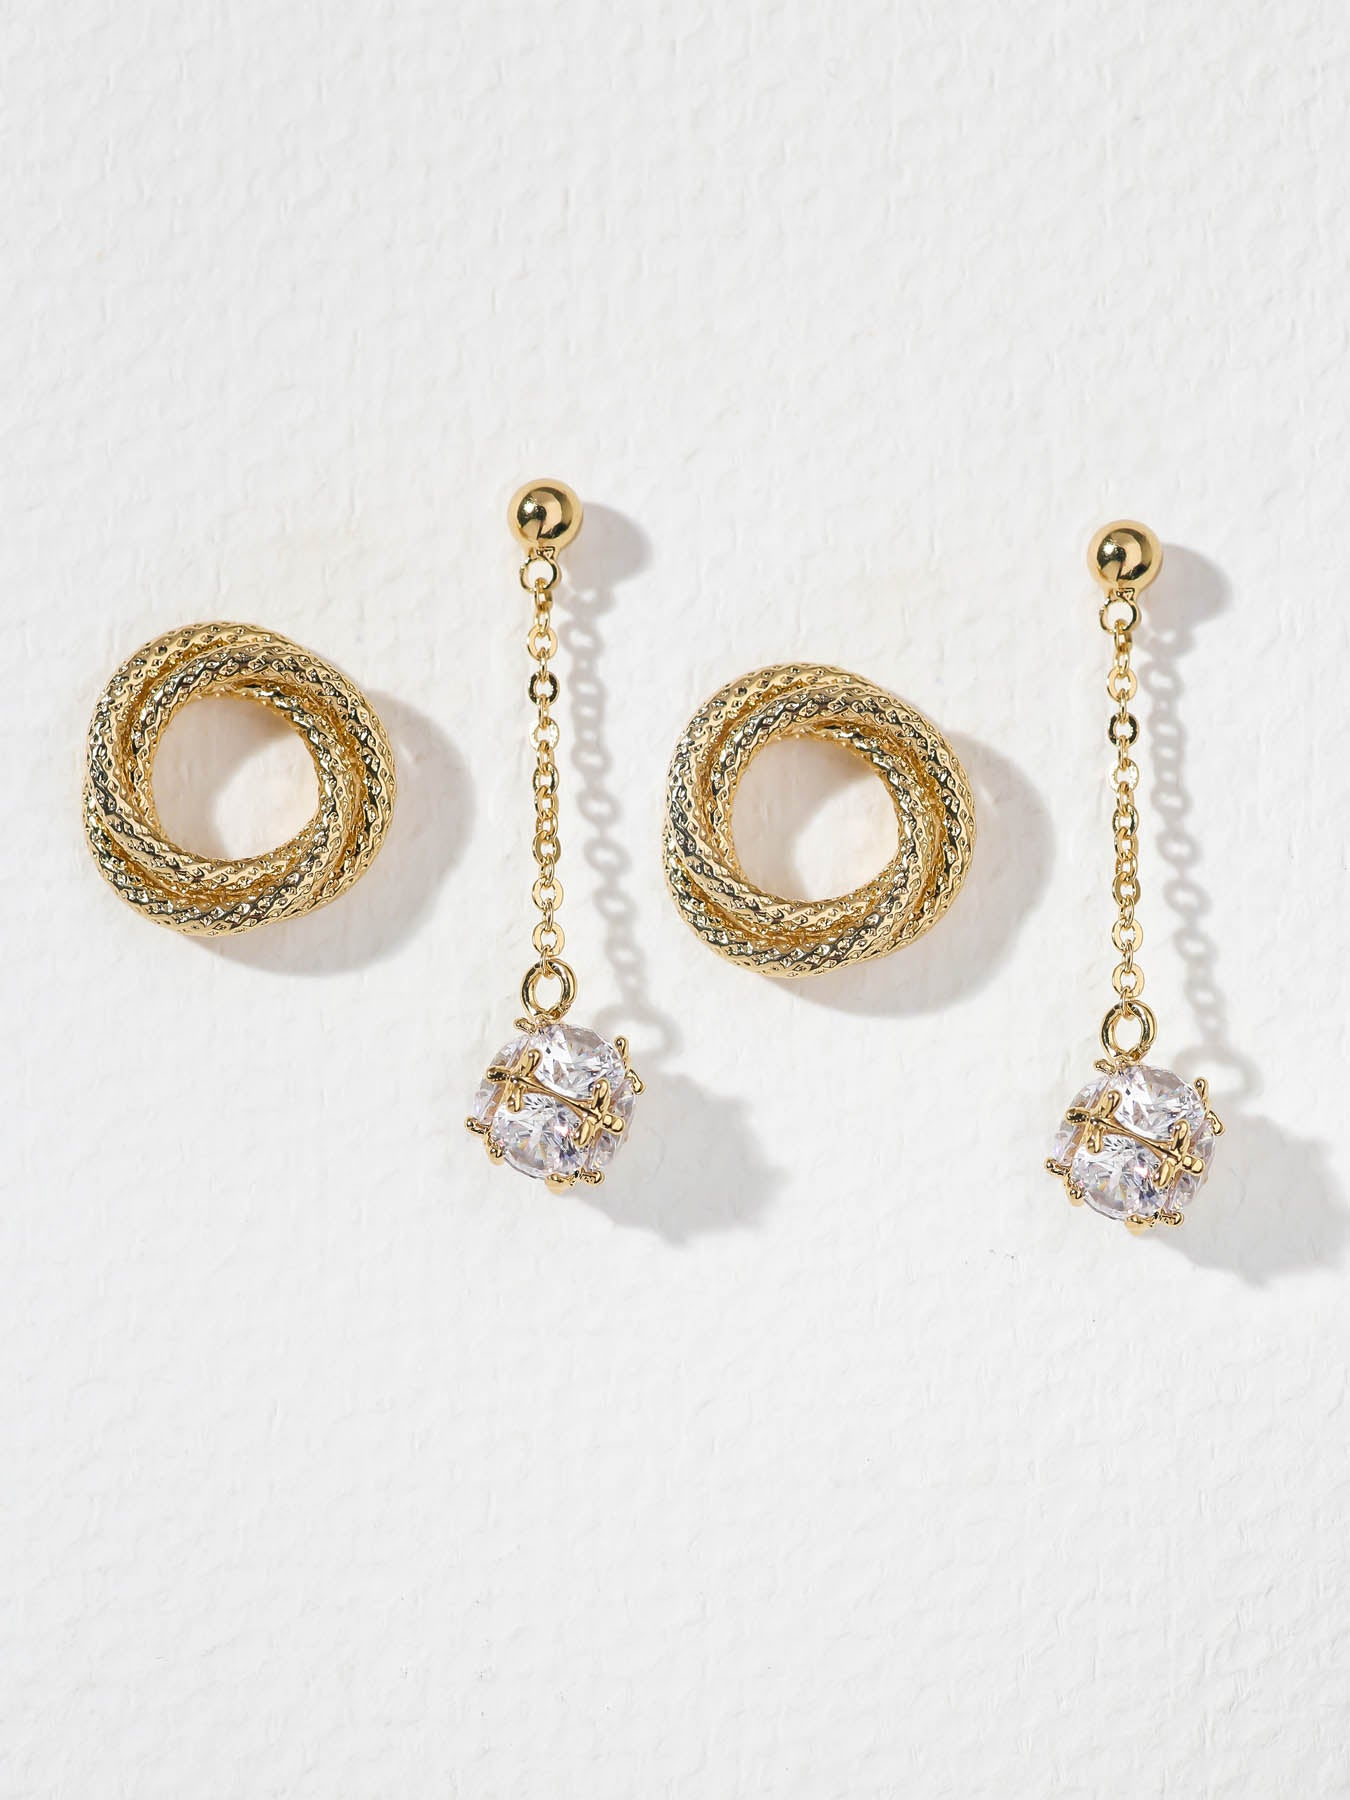 The Twisted Earring Set